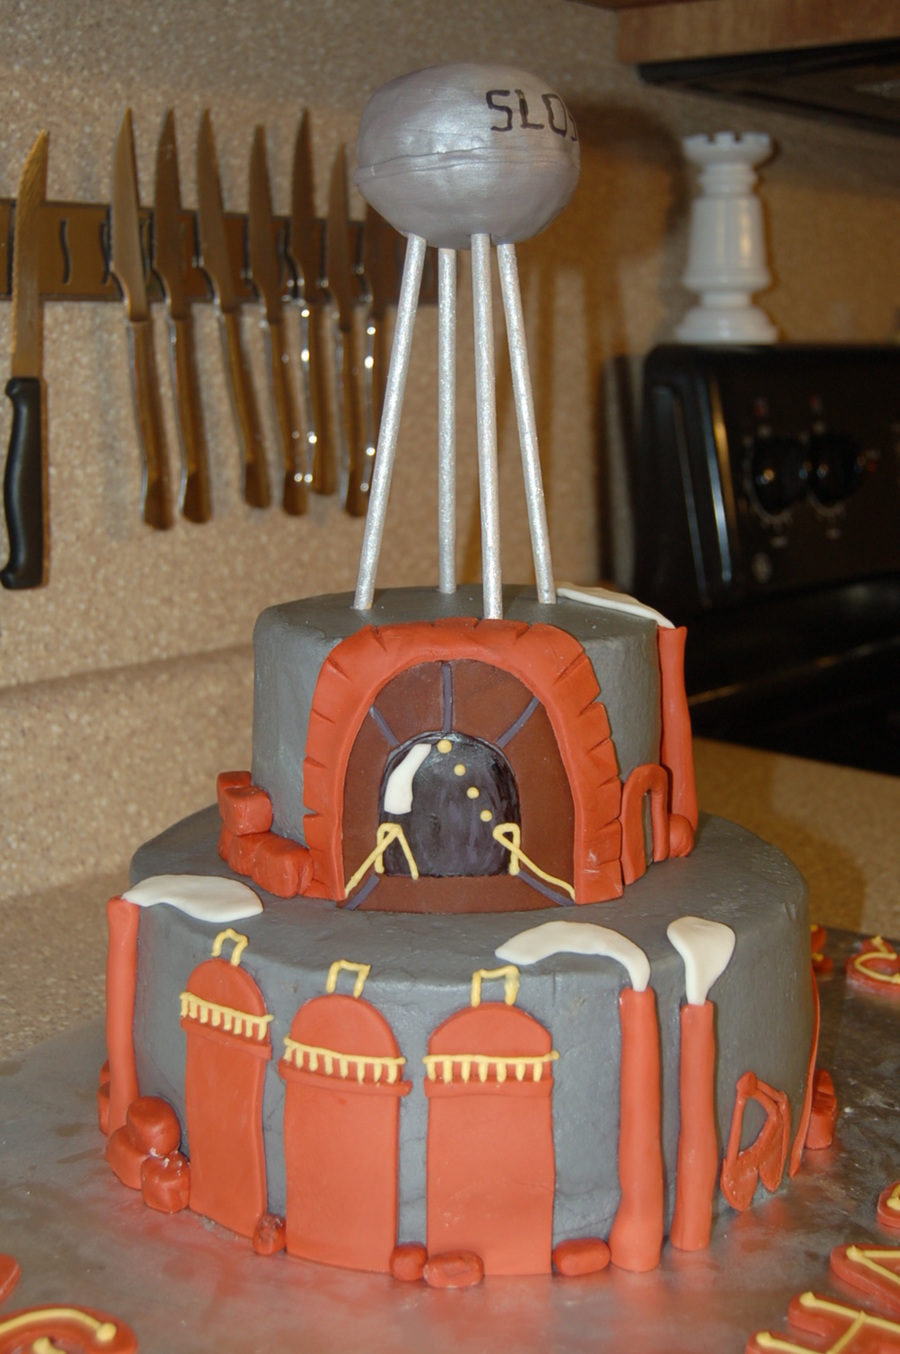 Sloss Furnace Cakecentral